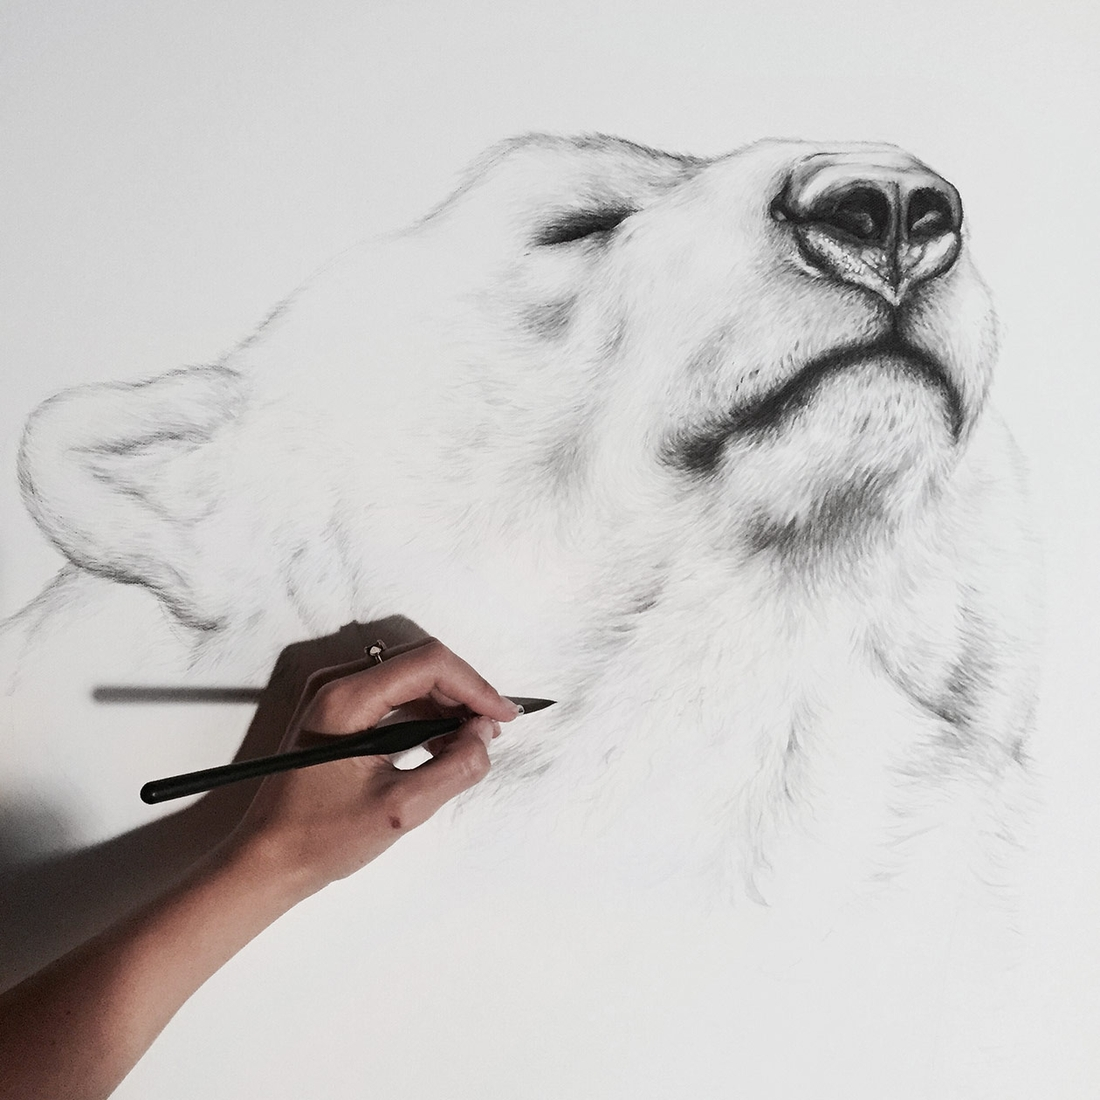 06-Polar-Bears-Detail-Jaimee-Paul-Mixed-Media-Animal-Drawings-and-Paintings-www-designstack-co